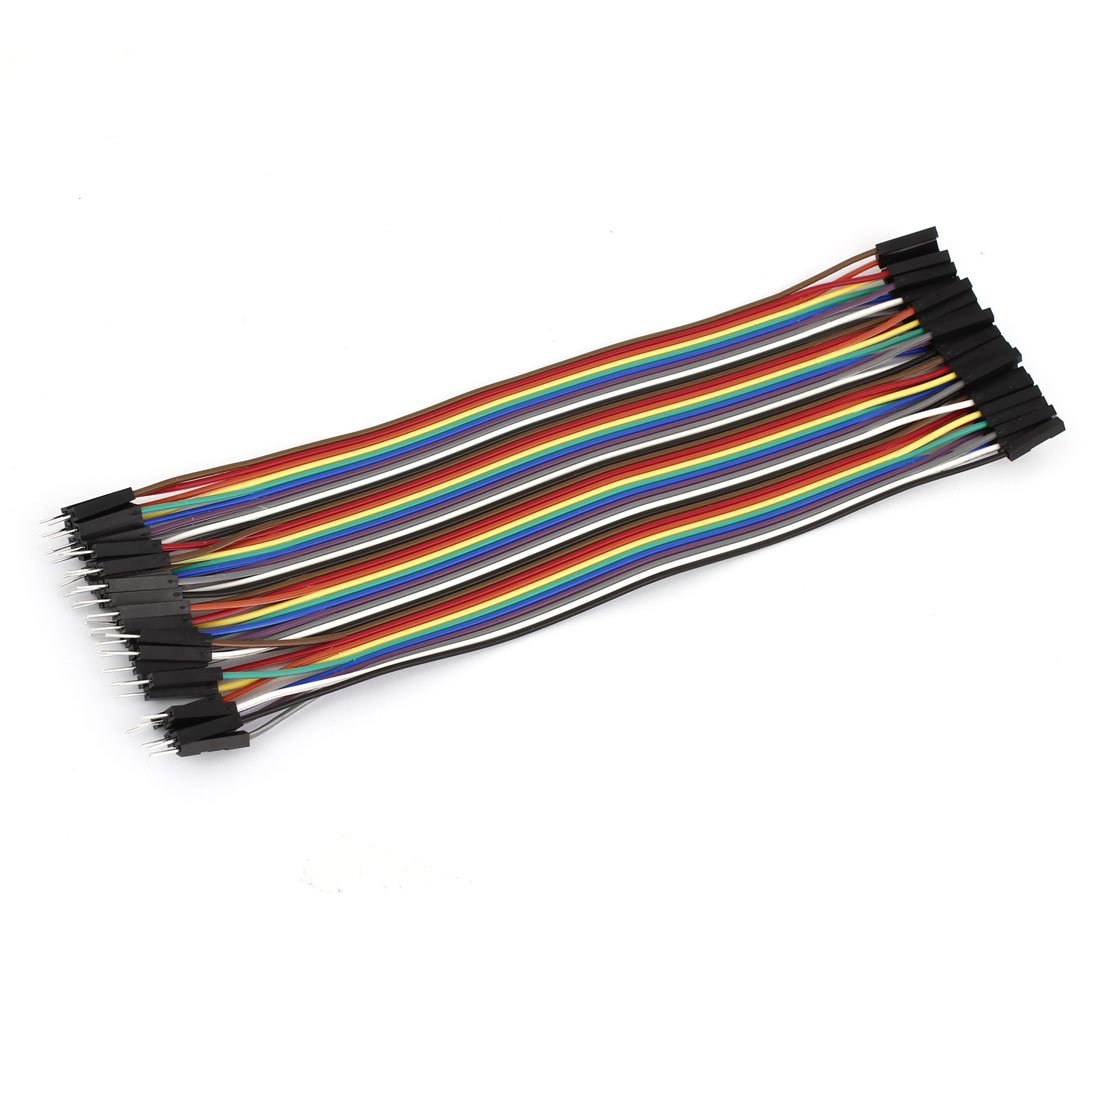 20 cm, 2,54 mm, da maschio a femmina a 40 Pin F/F Connect Jumper Cable Sourcingmap a14061000ux0610